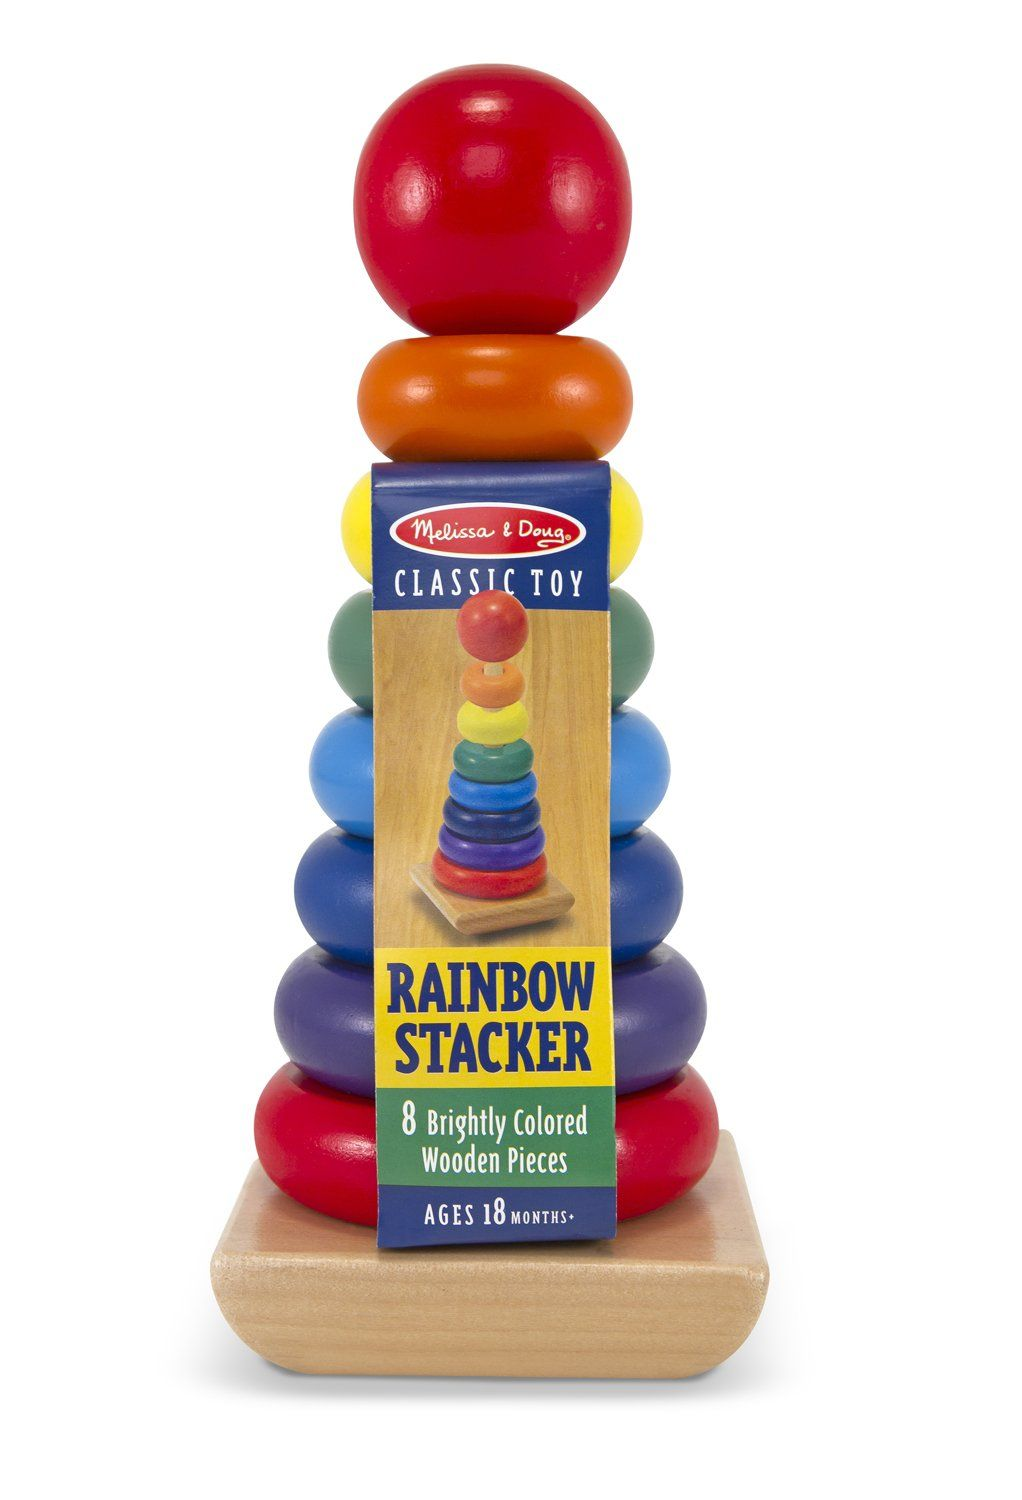 Amazon.com: Melissa & Doug Rainbow Stacker: Toys & Games ...